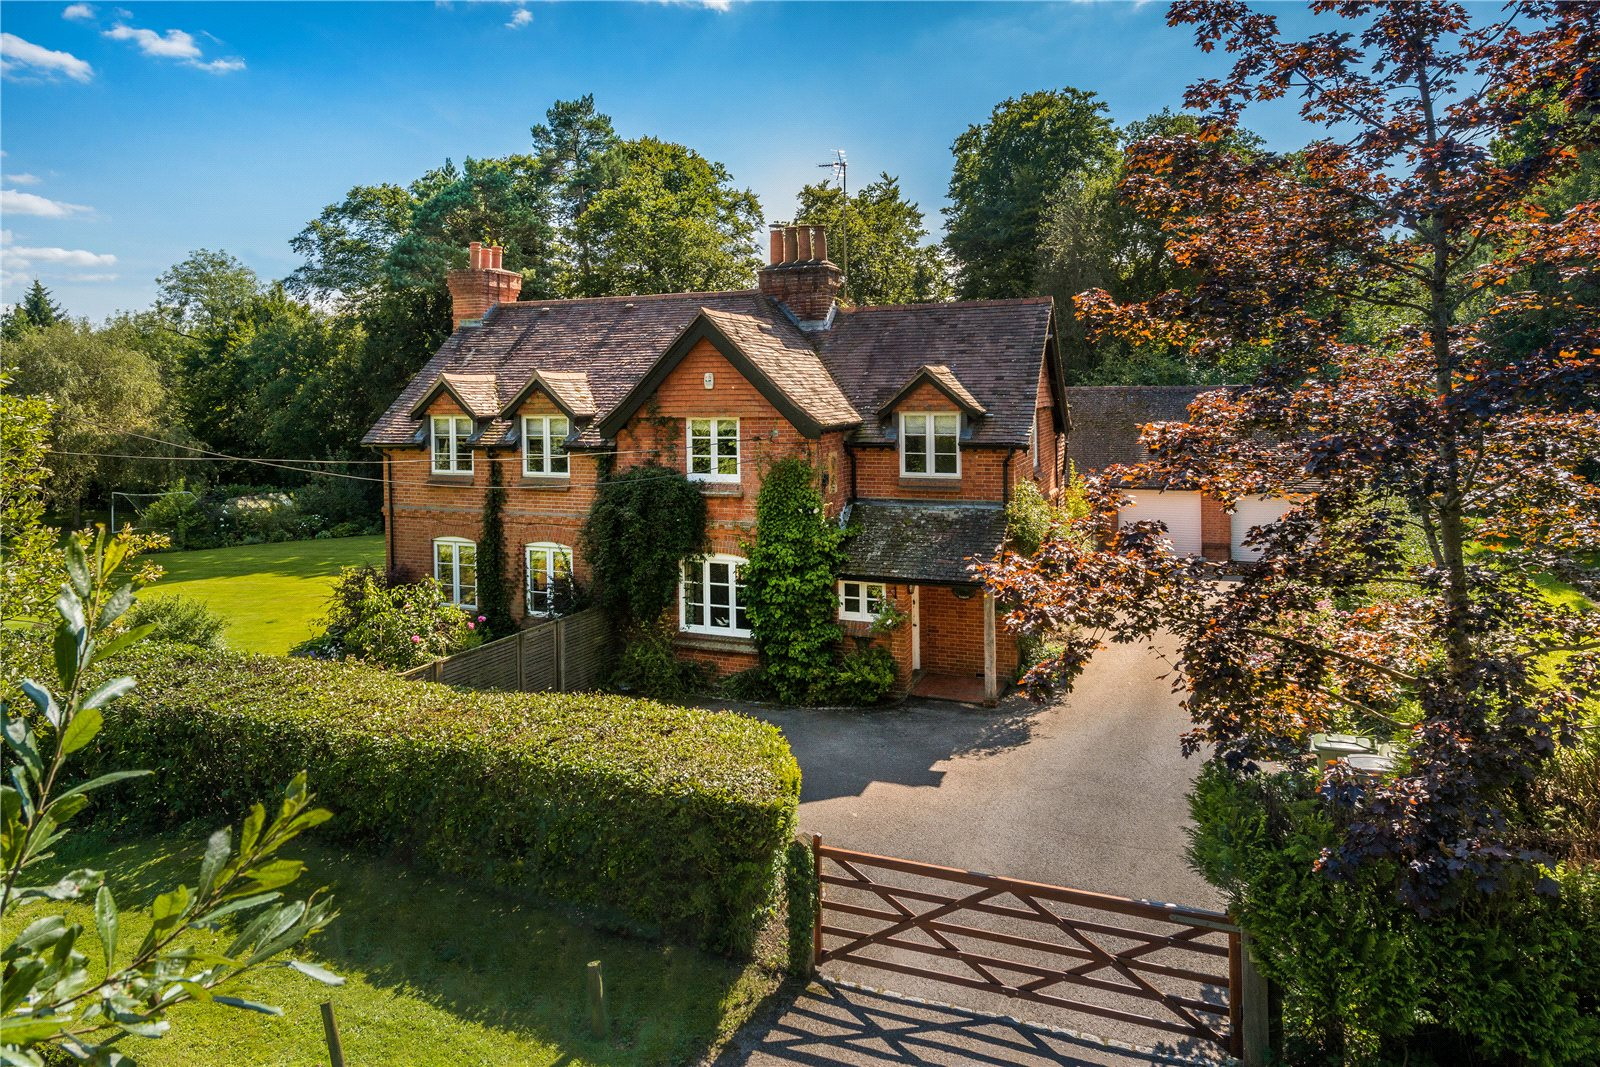 Additional Photo For Property Listing At Dockenfield Farnham Surrey GU10 England